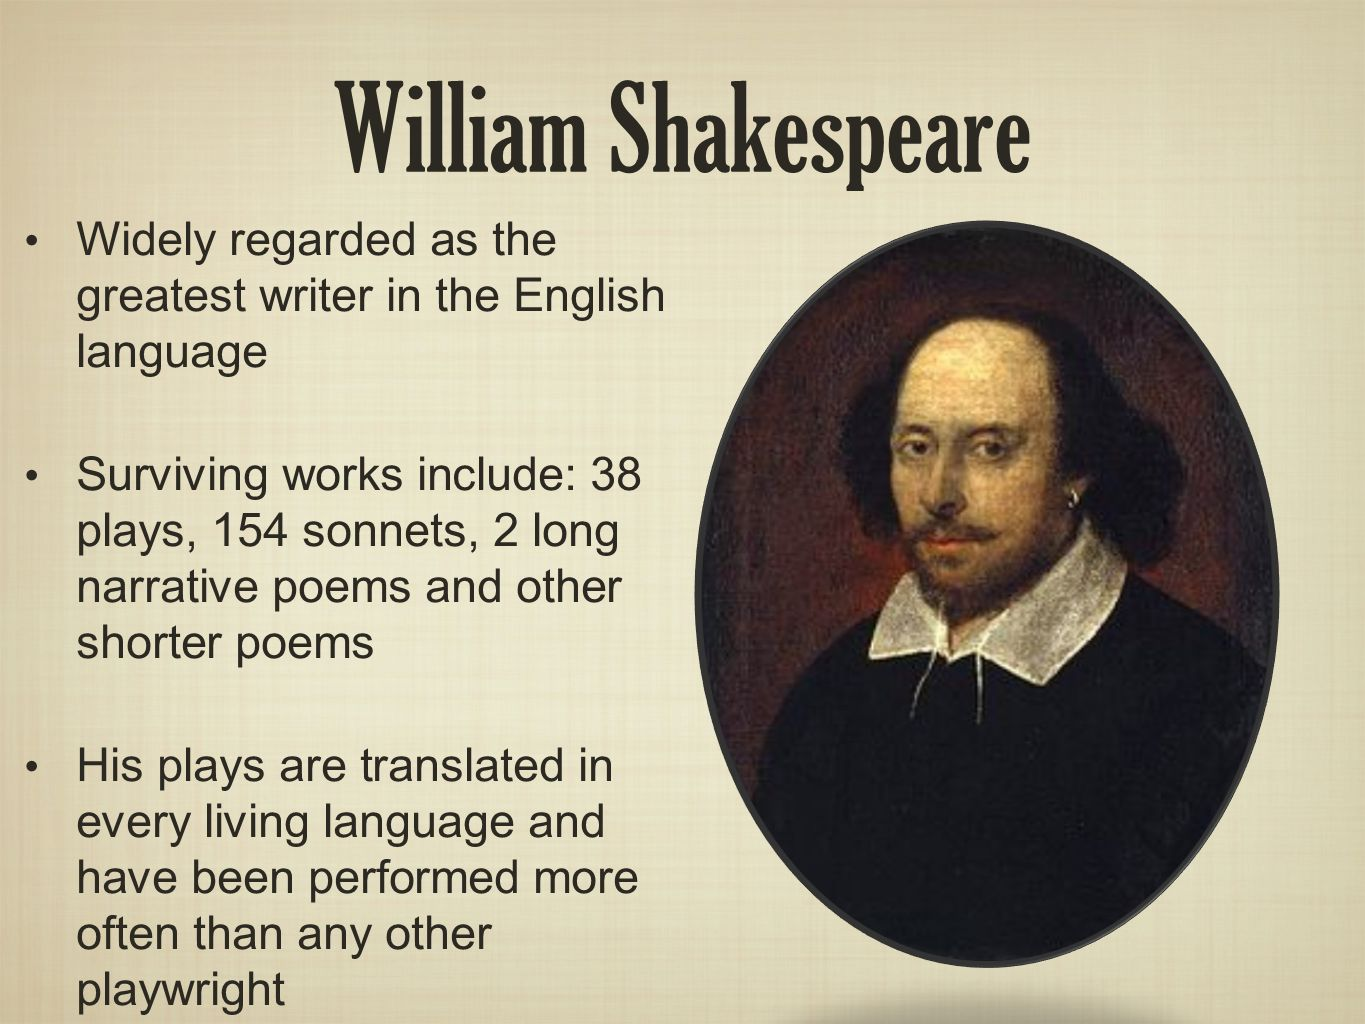 comparing and contrasting the writers ryan murphy and william shakespeare William shatner gained worldwide fame and became a cultural writers and editors collectively a discussion comparing and contrasting the two.